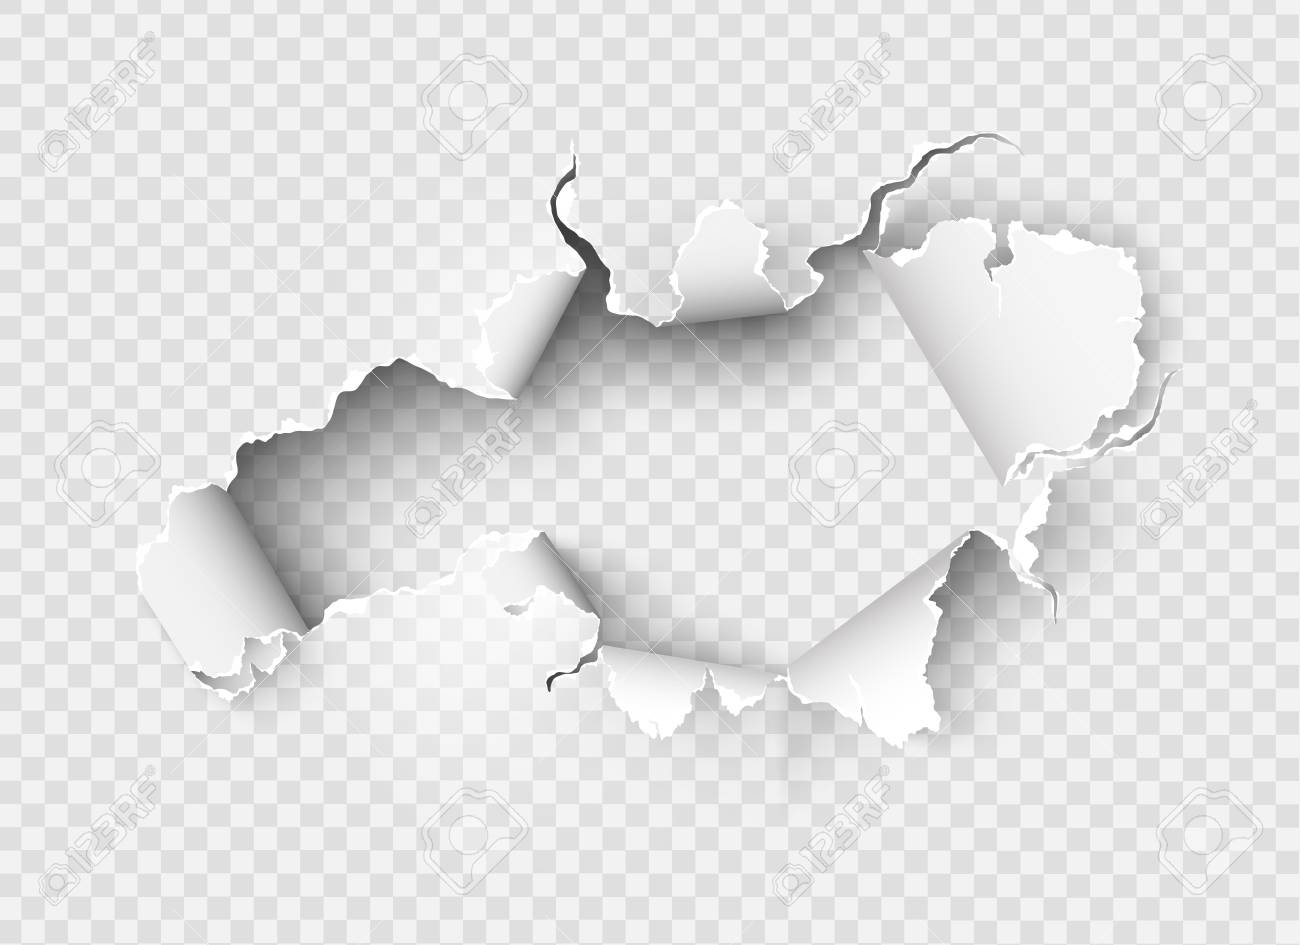 Ragged Hole torn in ripped paper on transparent background - 103515002